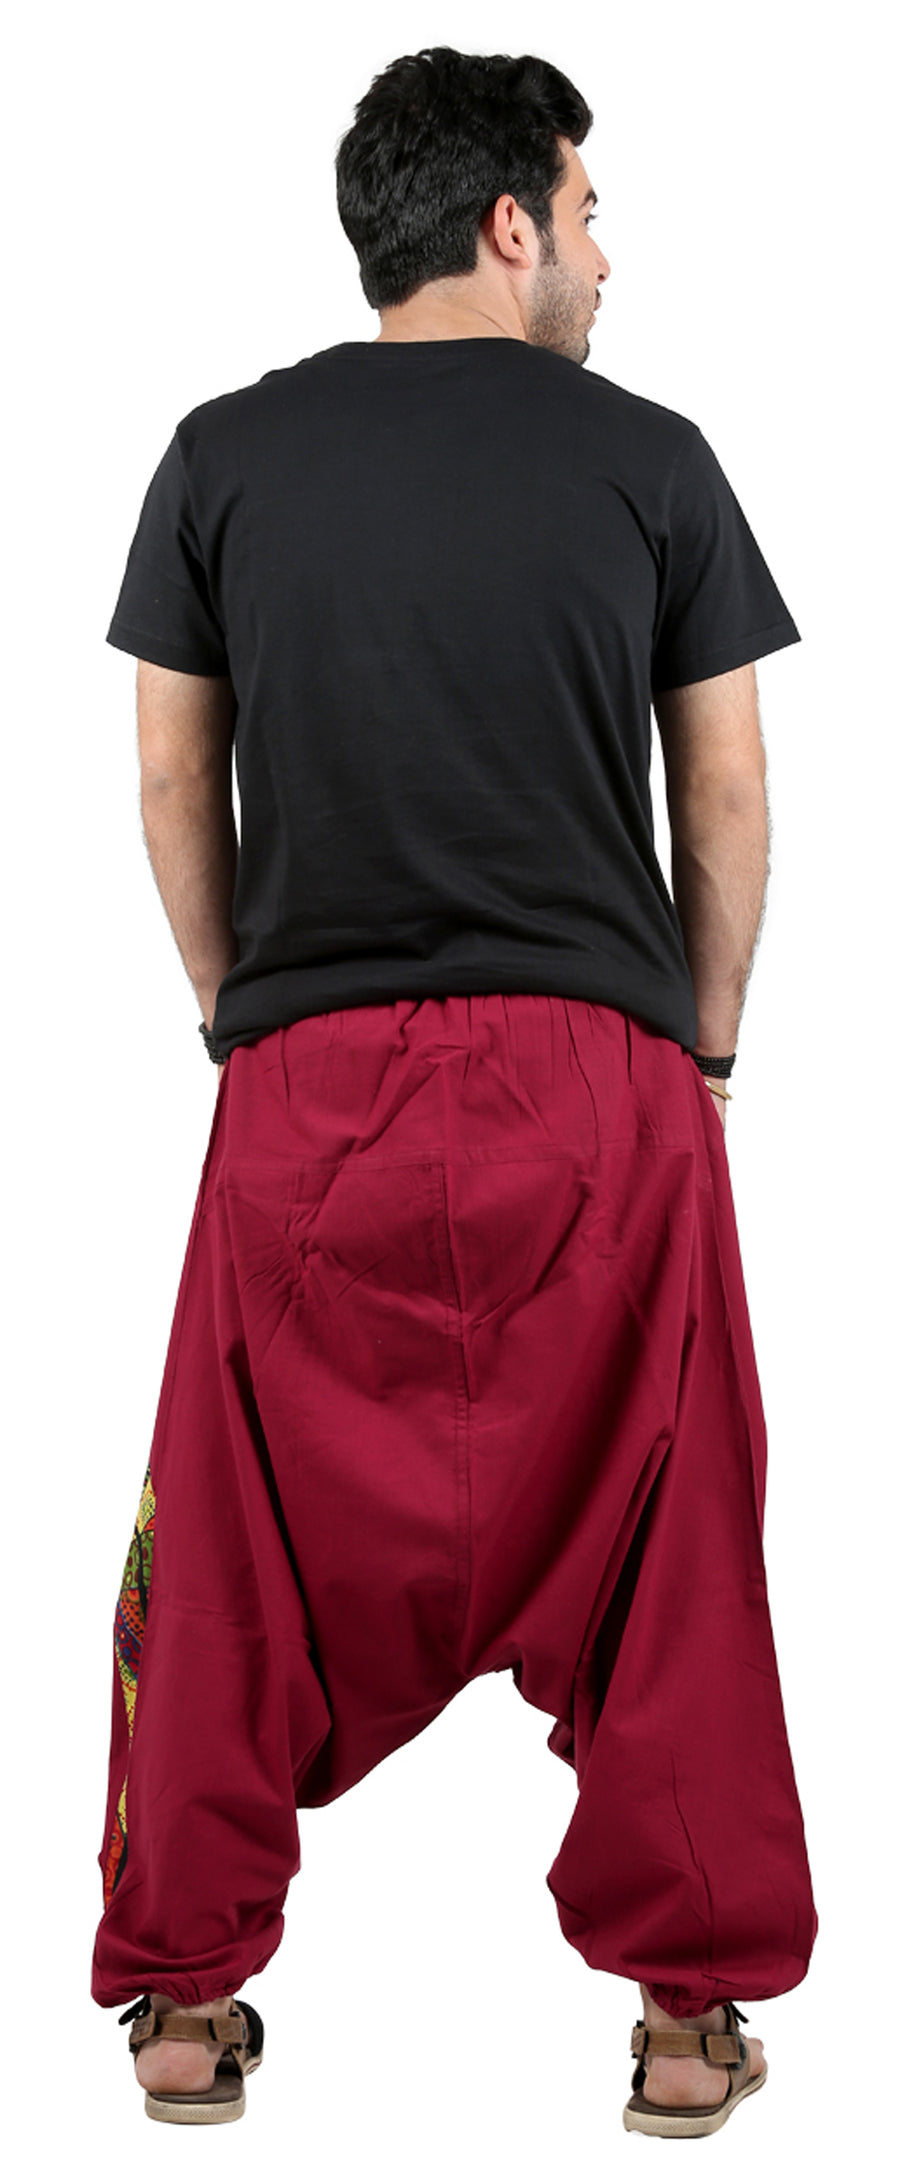 Harem Pants, Maroon Harem Pants, Wide Leg Pants, Show me Hippie Pants, Show me some Mens Harem Pants, Show me some Womens Harem Pants, What is a harem pant, Show me some baggy pants, I want to buy harem pants, cool harem pants, Wide leg harem Pants, Cheap Harem Pants, Show me best harem pants, Highly rated Harem Pants, Sarouel, Haremshose, Afgani Pants, One Size Fits All Pants,Show me  XXXL Pants